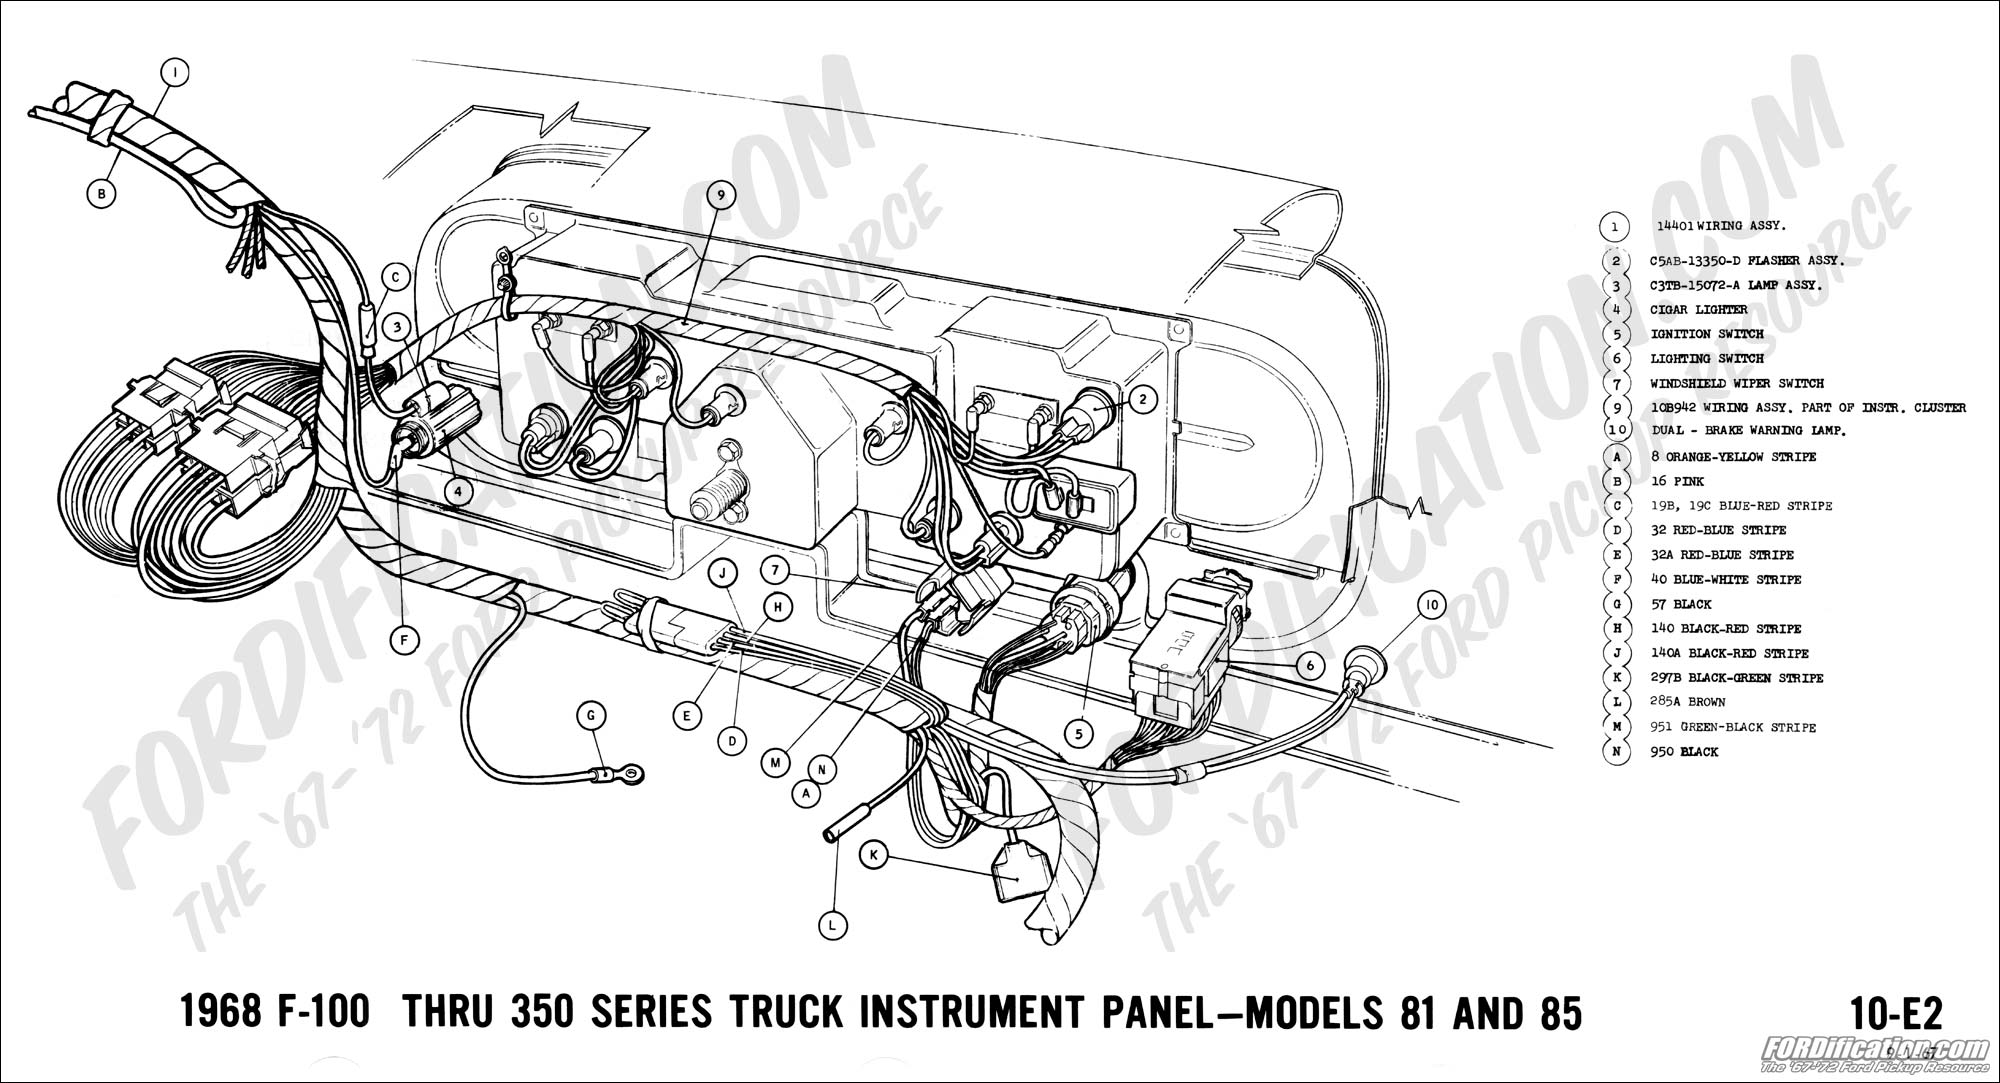 72 Ford Coil Wiring Diagram Library Prius Diagrams 1968 F 100 Thru 350 Instrument Panel